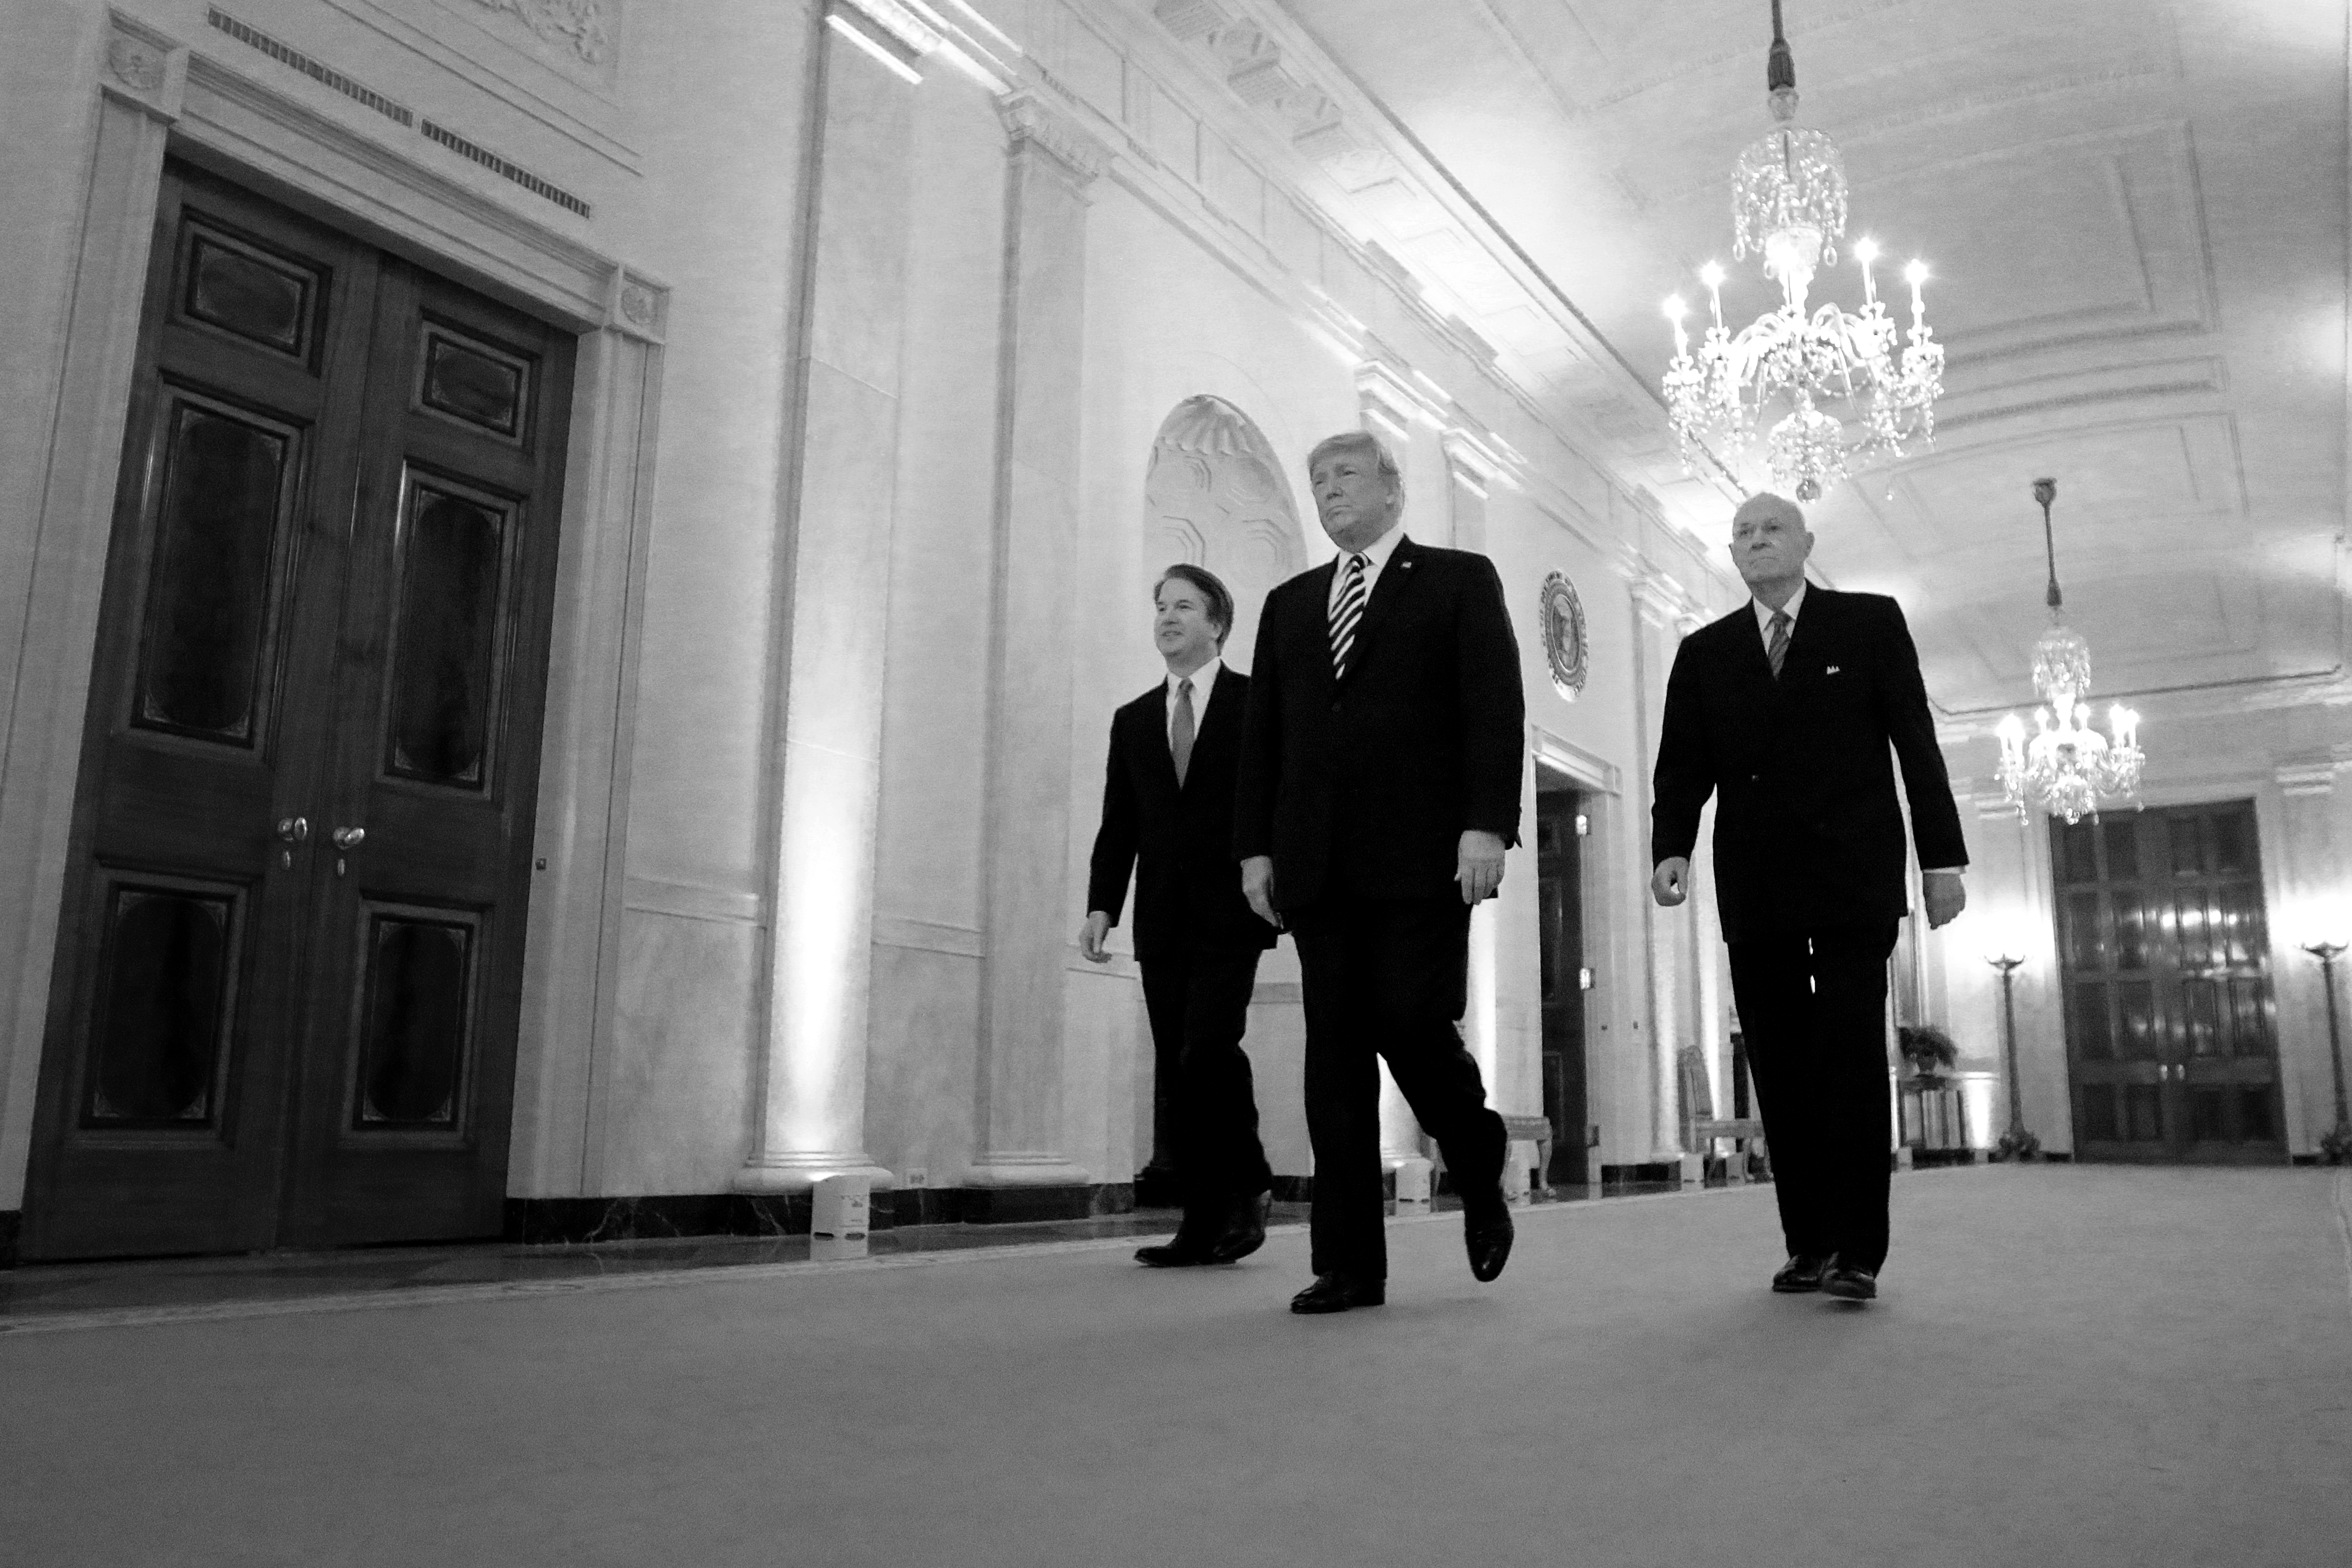 (L-R) Supreme Court Justice Brett Kavanaugh, President Donald Trump and retired Justice Anthony Kennedy walk into the East Room of the White House for Kavanaugh's ceremonial swearing on October 08, 2018. (Chip Somodevilla/Getty Images)